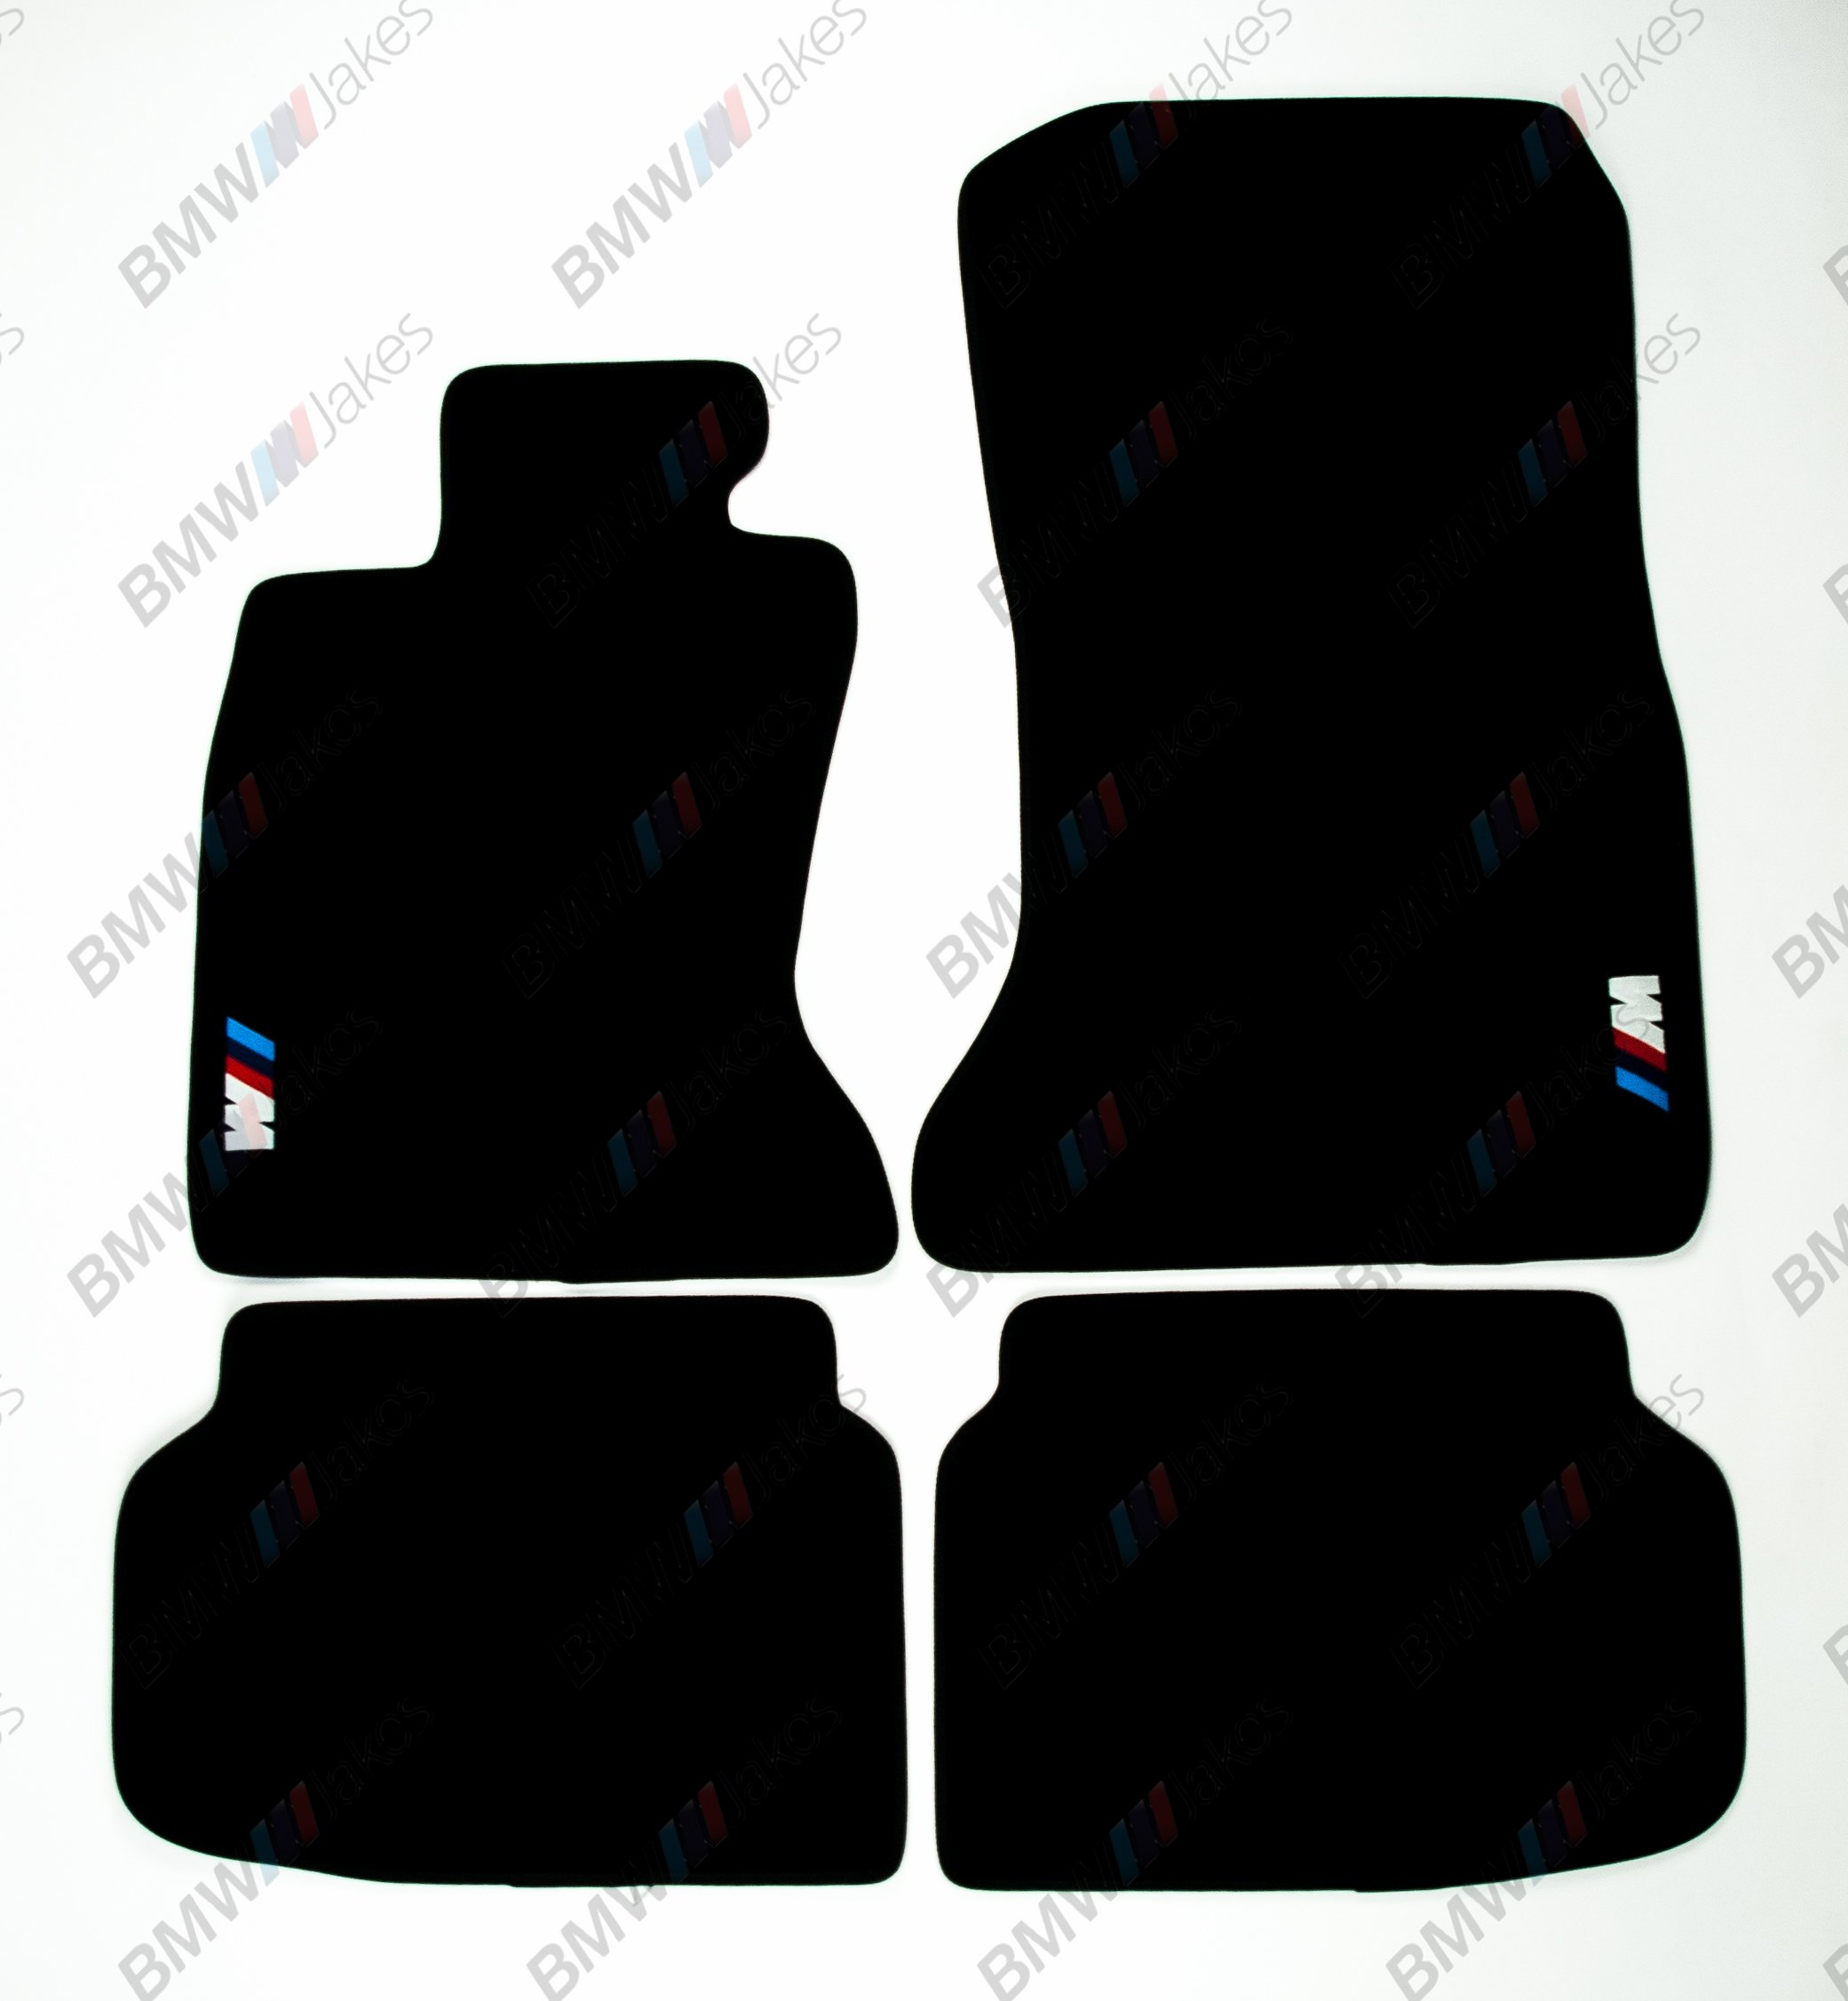 NEW CAR FLOOR MATS BLACK with ///M EMBLEM for BMW 7 series F01 ( 2007 - 2015 )